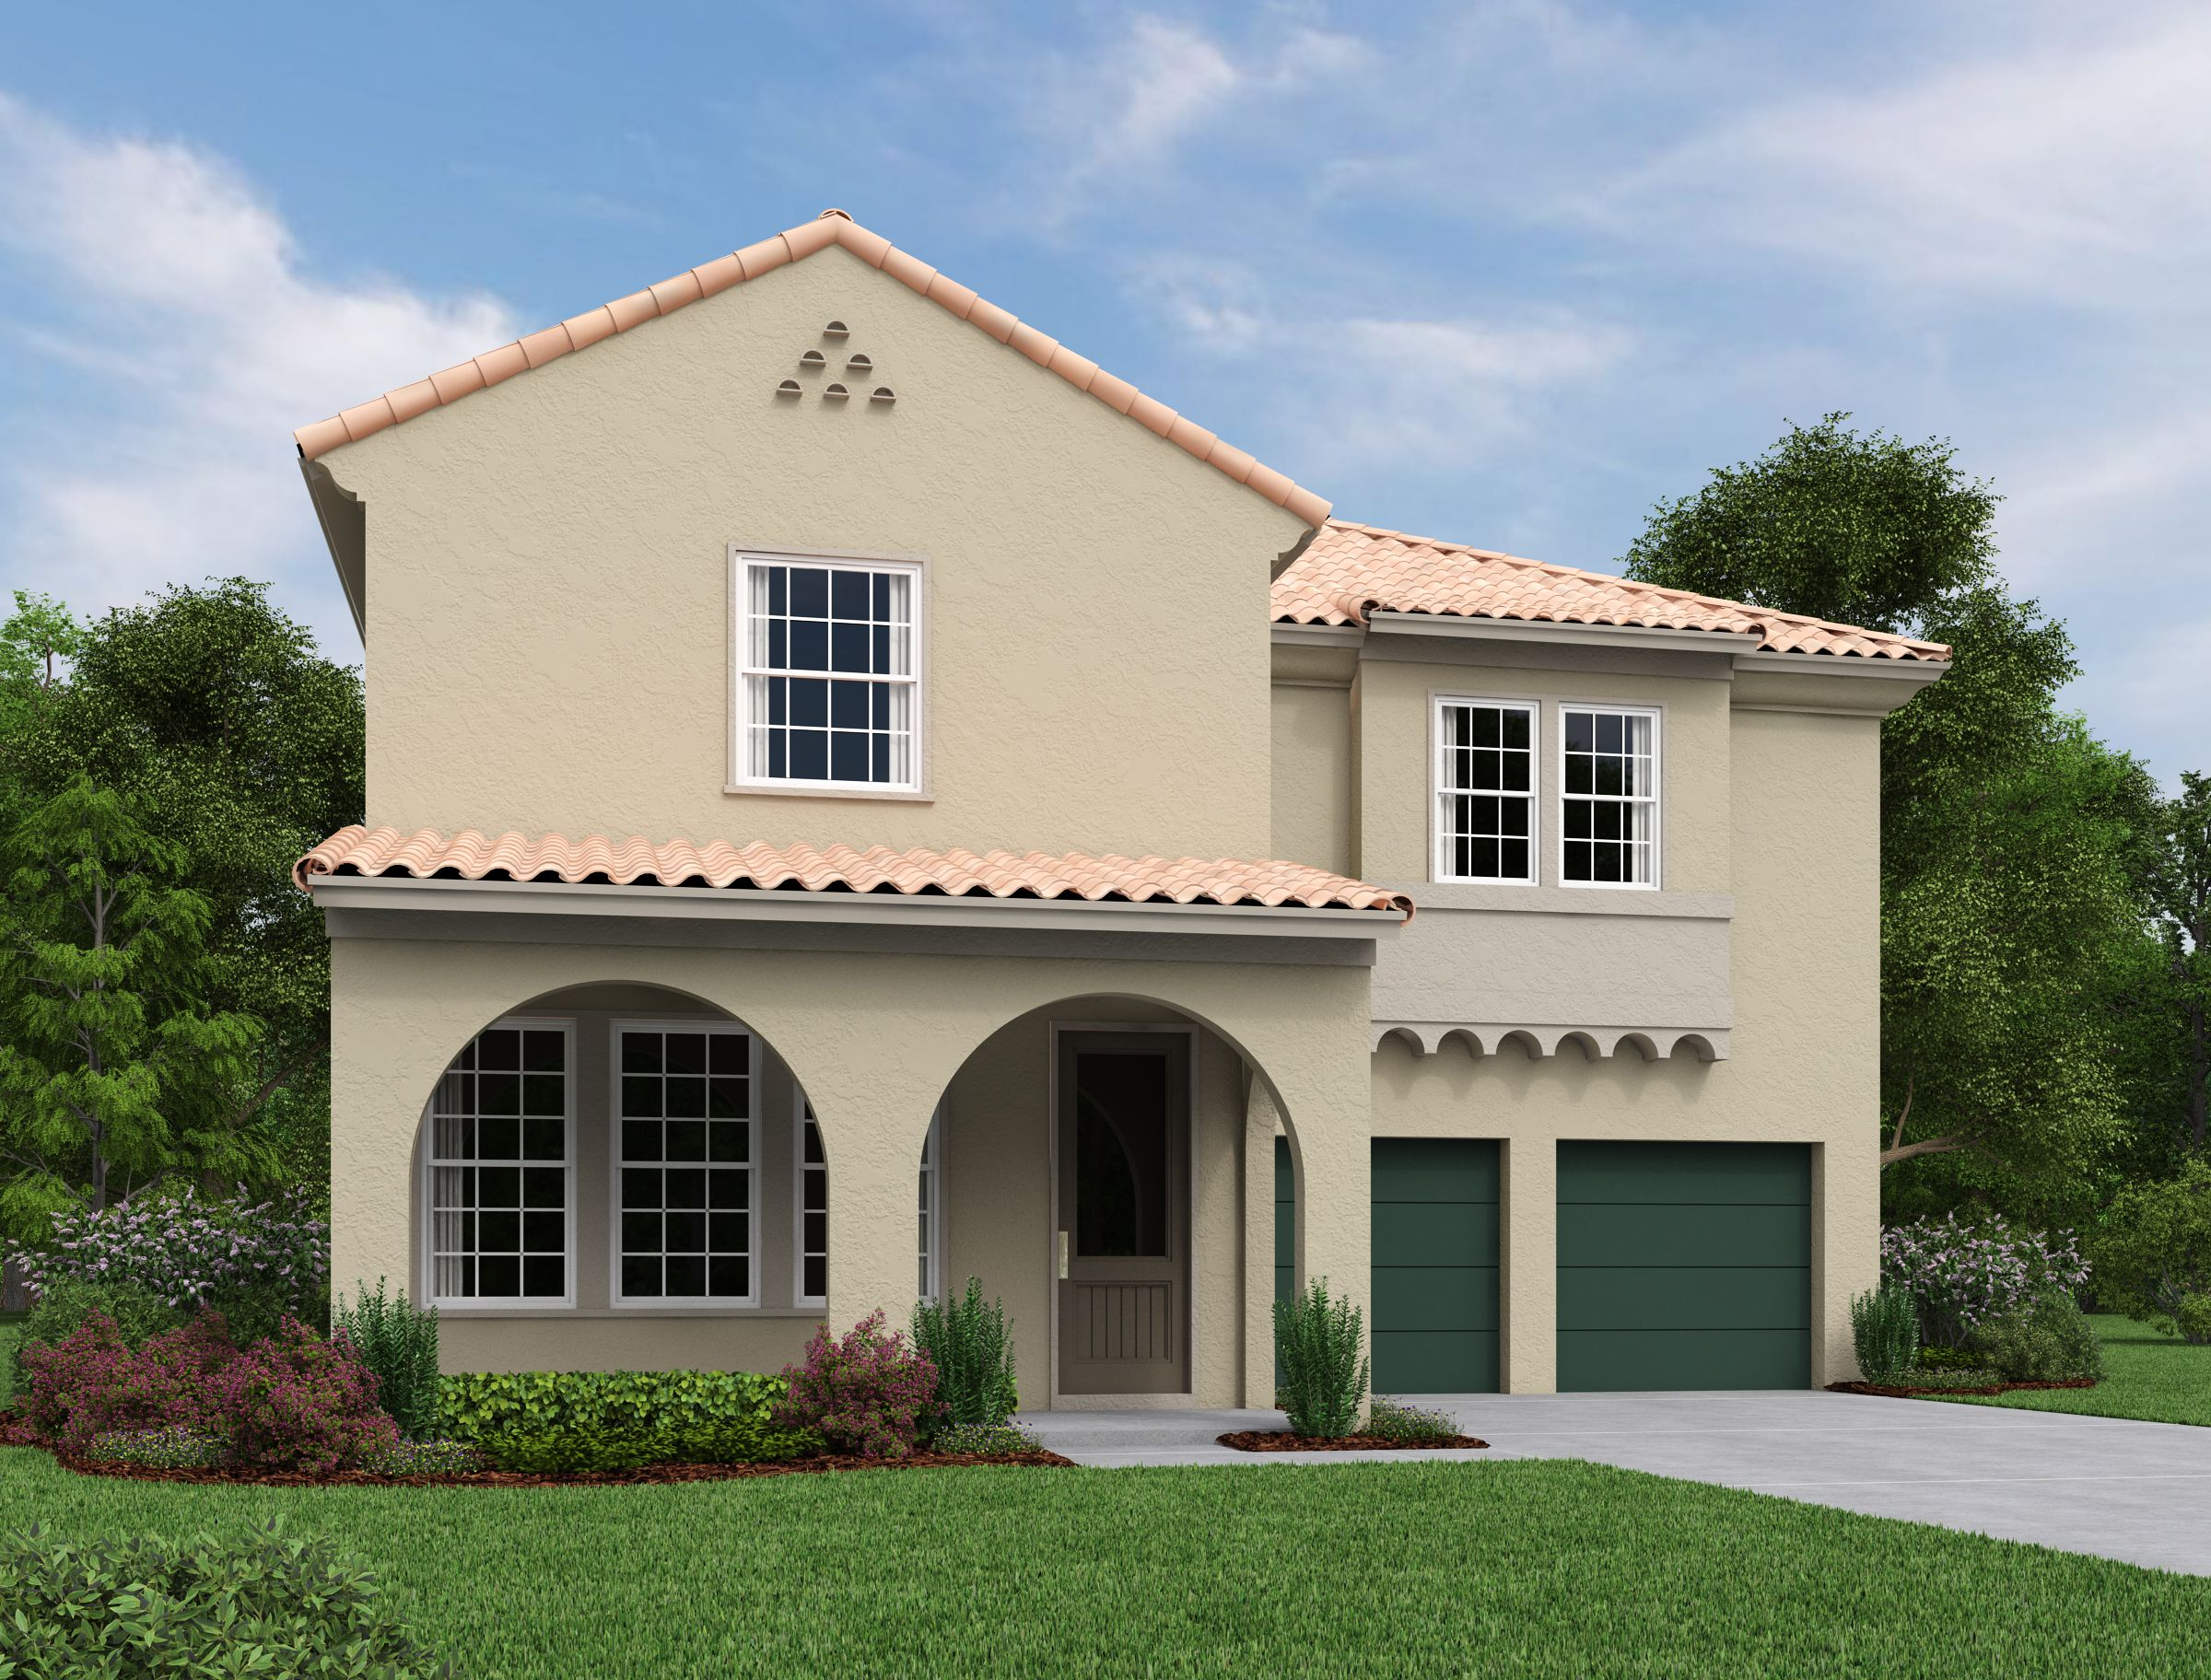 Single Family for Sale at Estates At Sweetwater Country Club Traditional - Carlisle 2633 Roveri Avenue Apopka, Florida 32712 United States